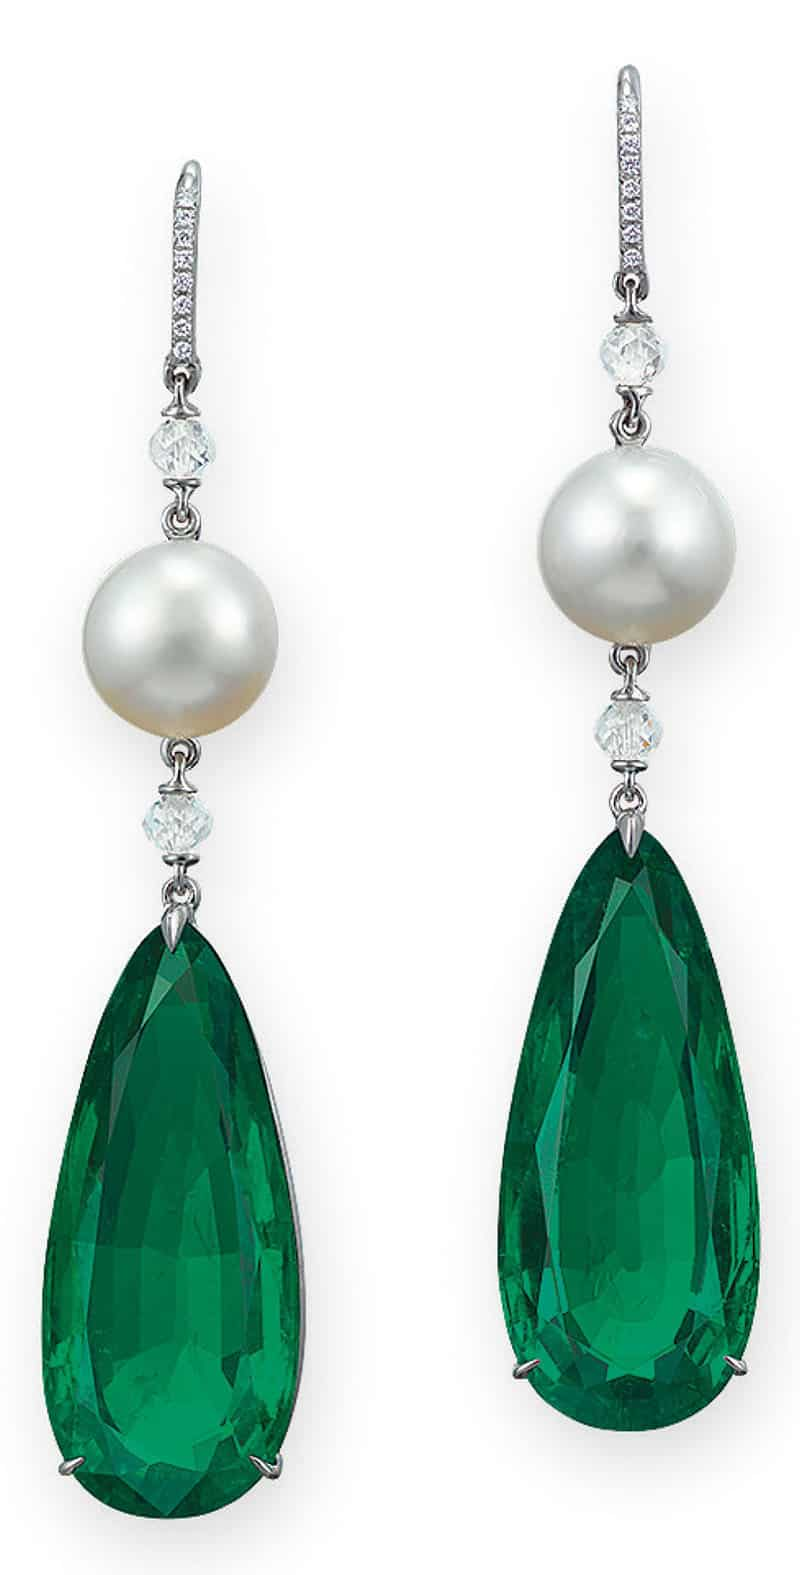 LOT 2015 - AN ELEGANT PAIR OF EMERALD, NATURAL PEARL AND DIAMOND EAR PENDANTS